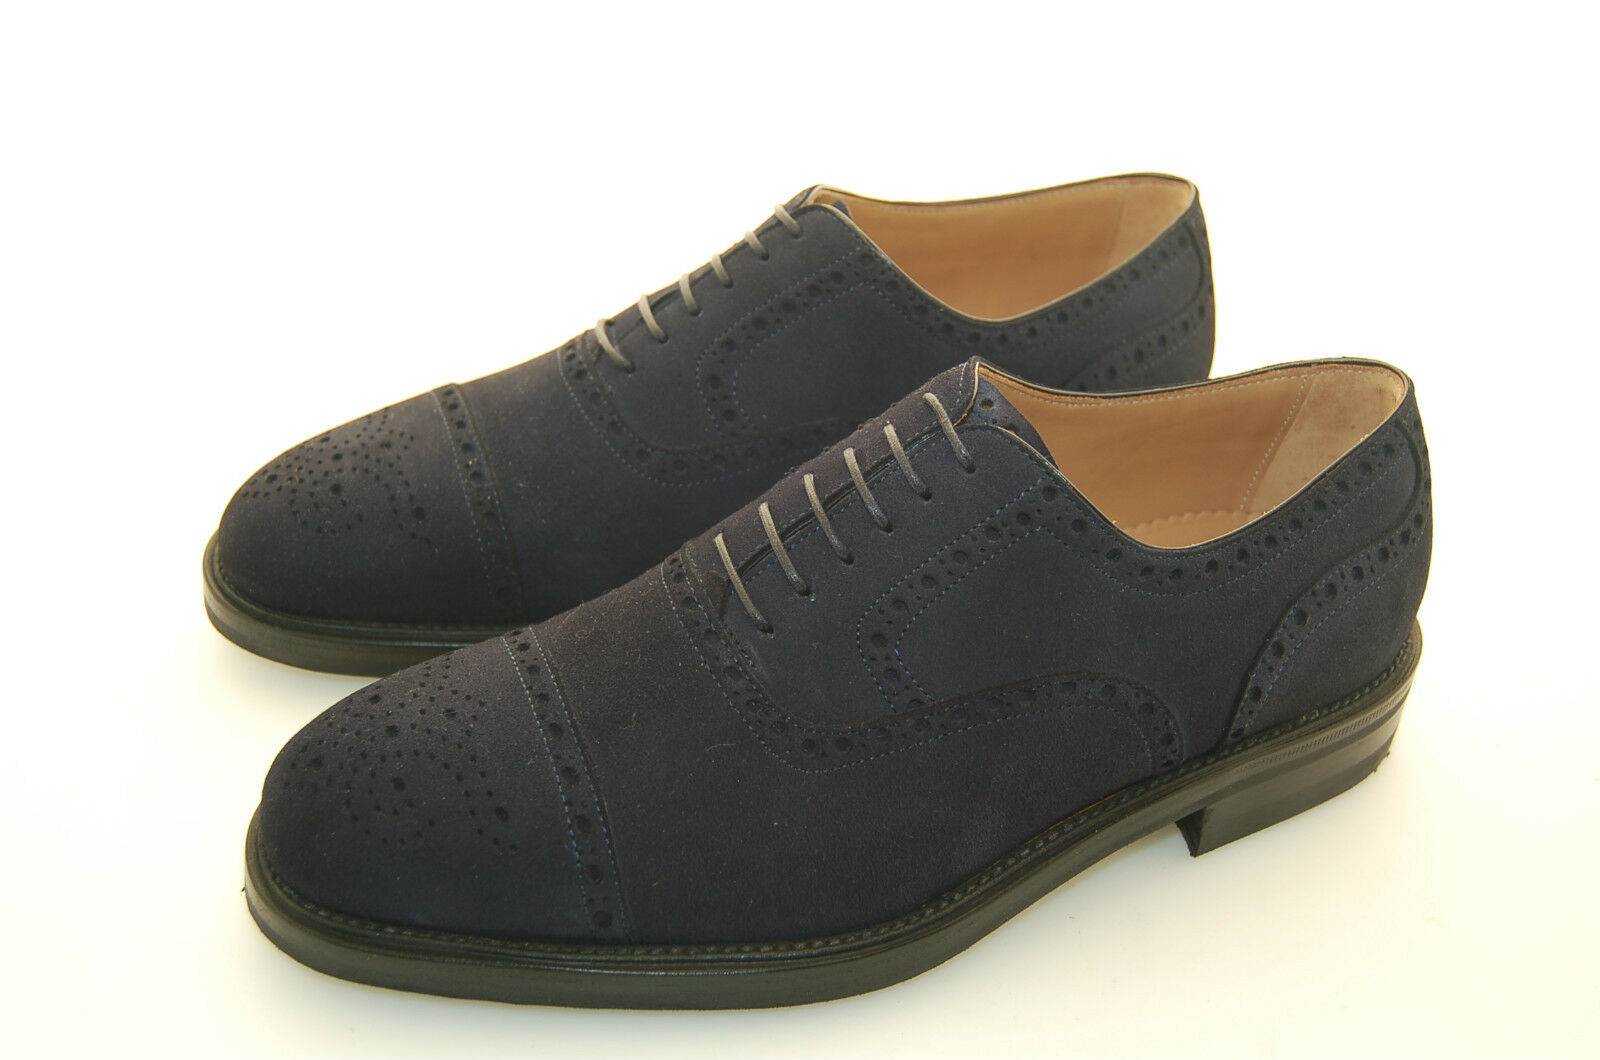 MAN-41½-7½USA-OXFORD CAPTOE-FRANCESINA CAPTOE-FRANCESINA MAN-41½-7½USA-OXFORD CAMOSCIO-BLUE SUEDE-RUBBER DAINITE SOLE d94a0c